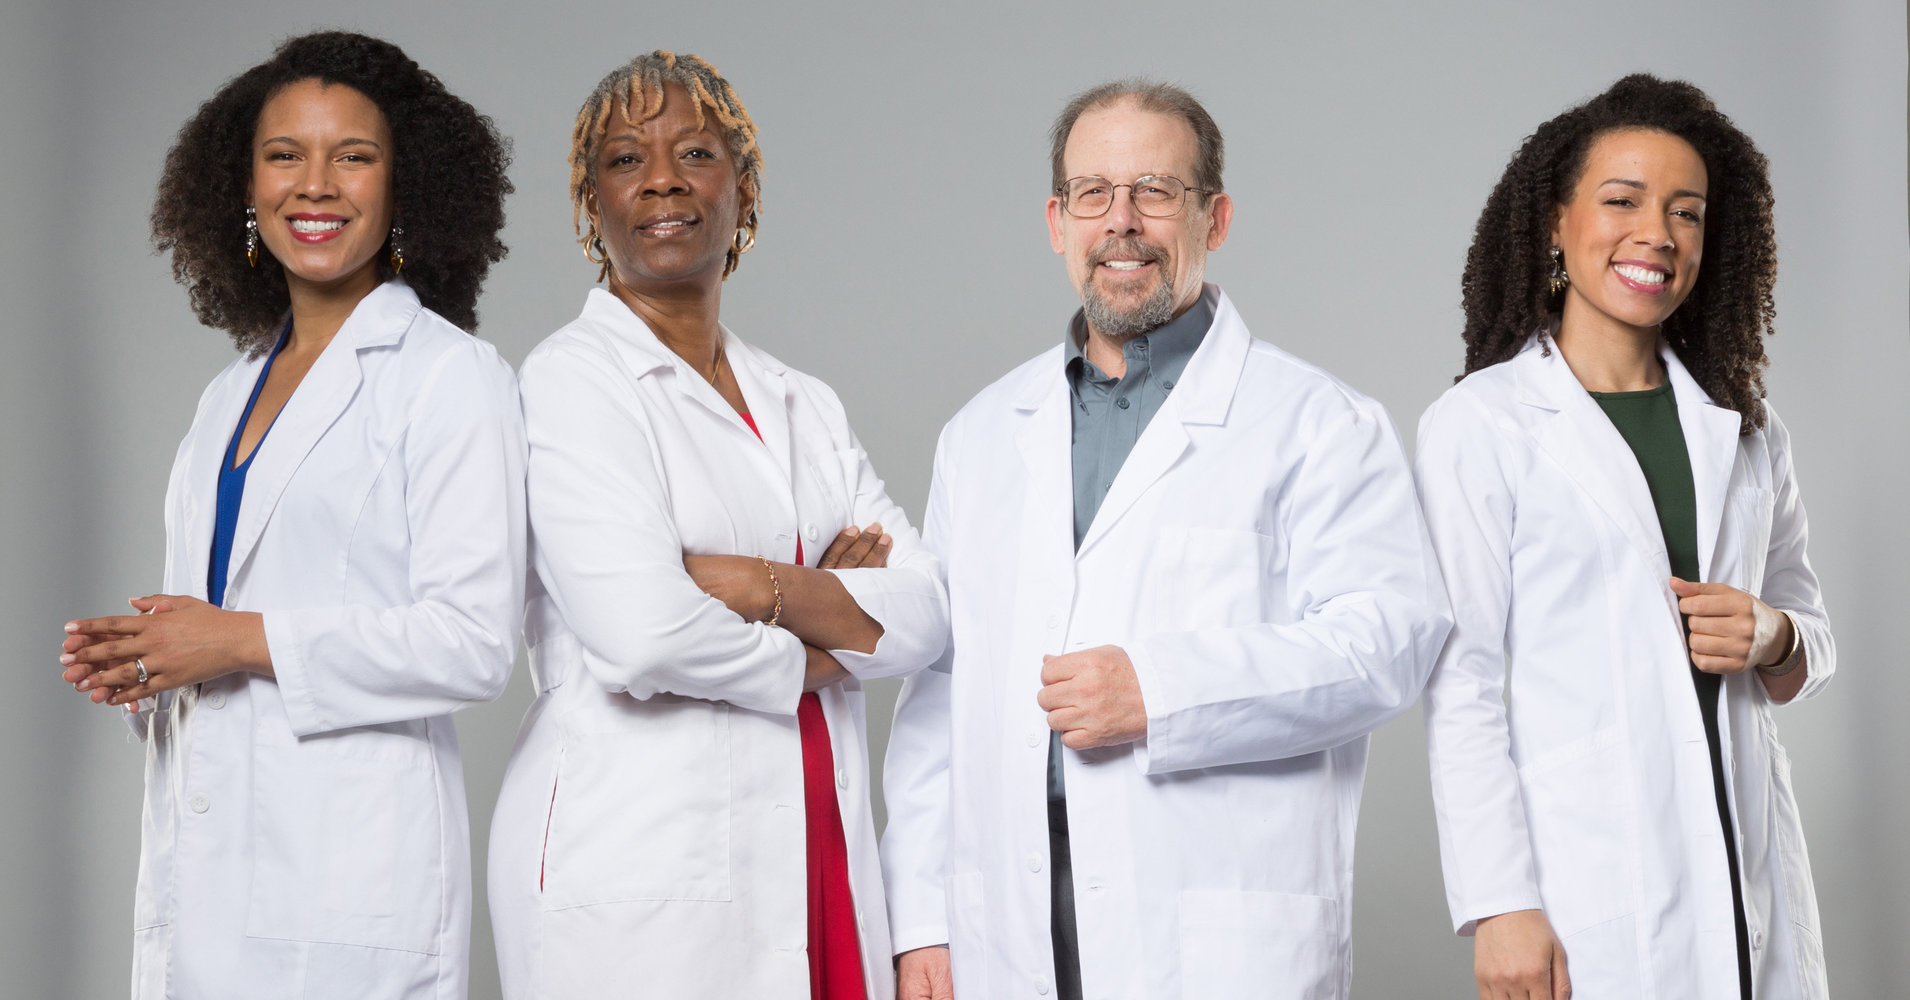 These Doctors Want Your Doctor To Know More About Weed